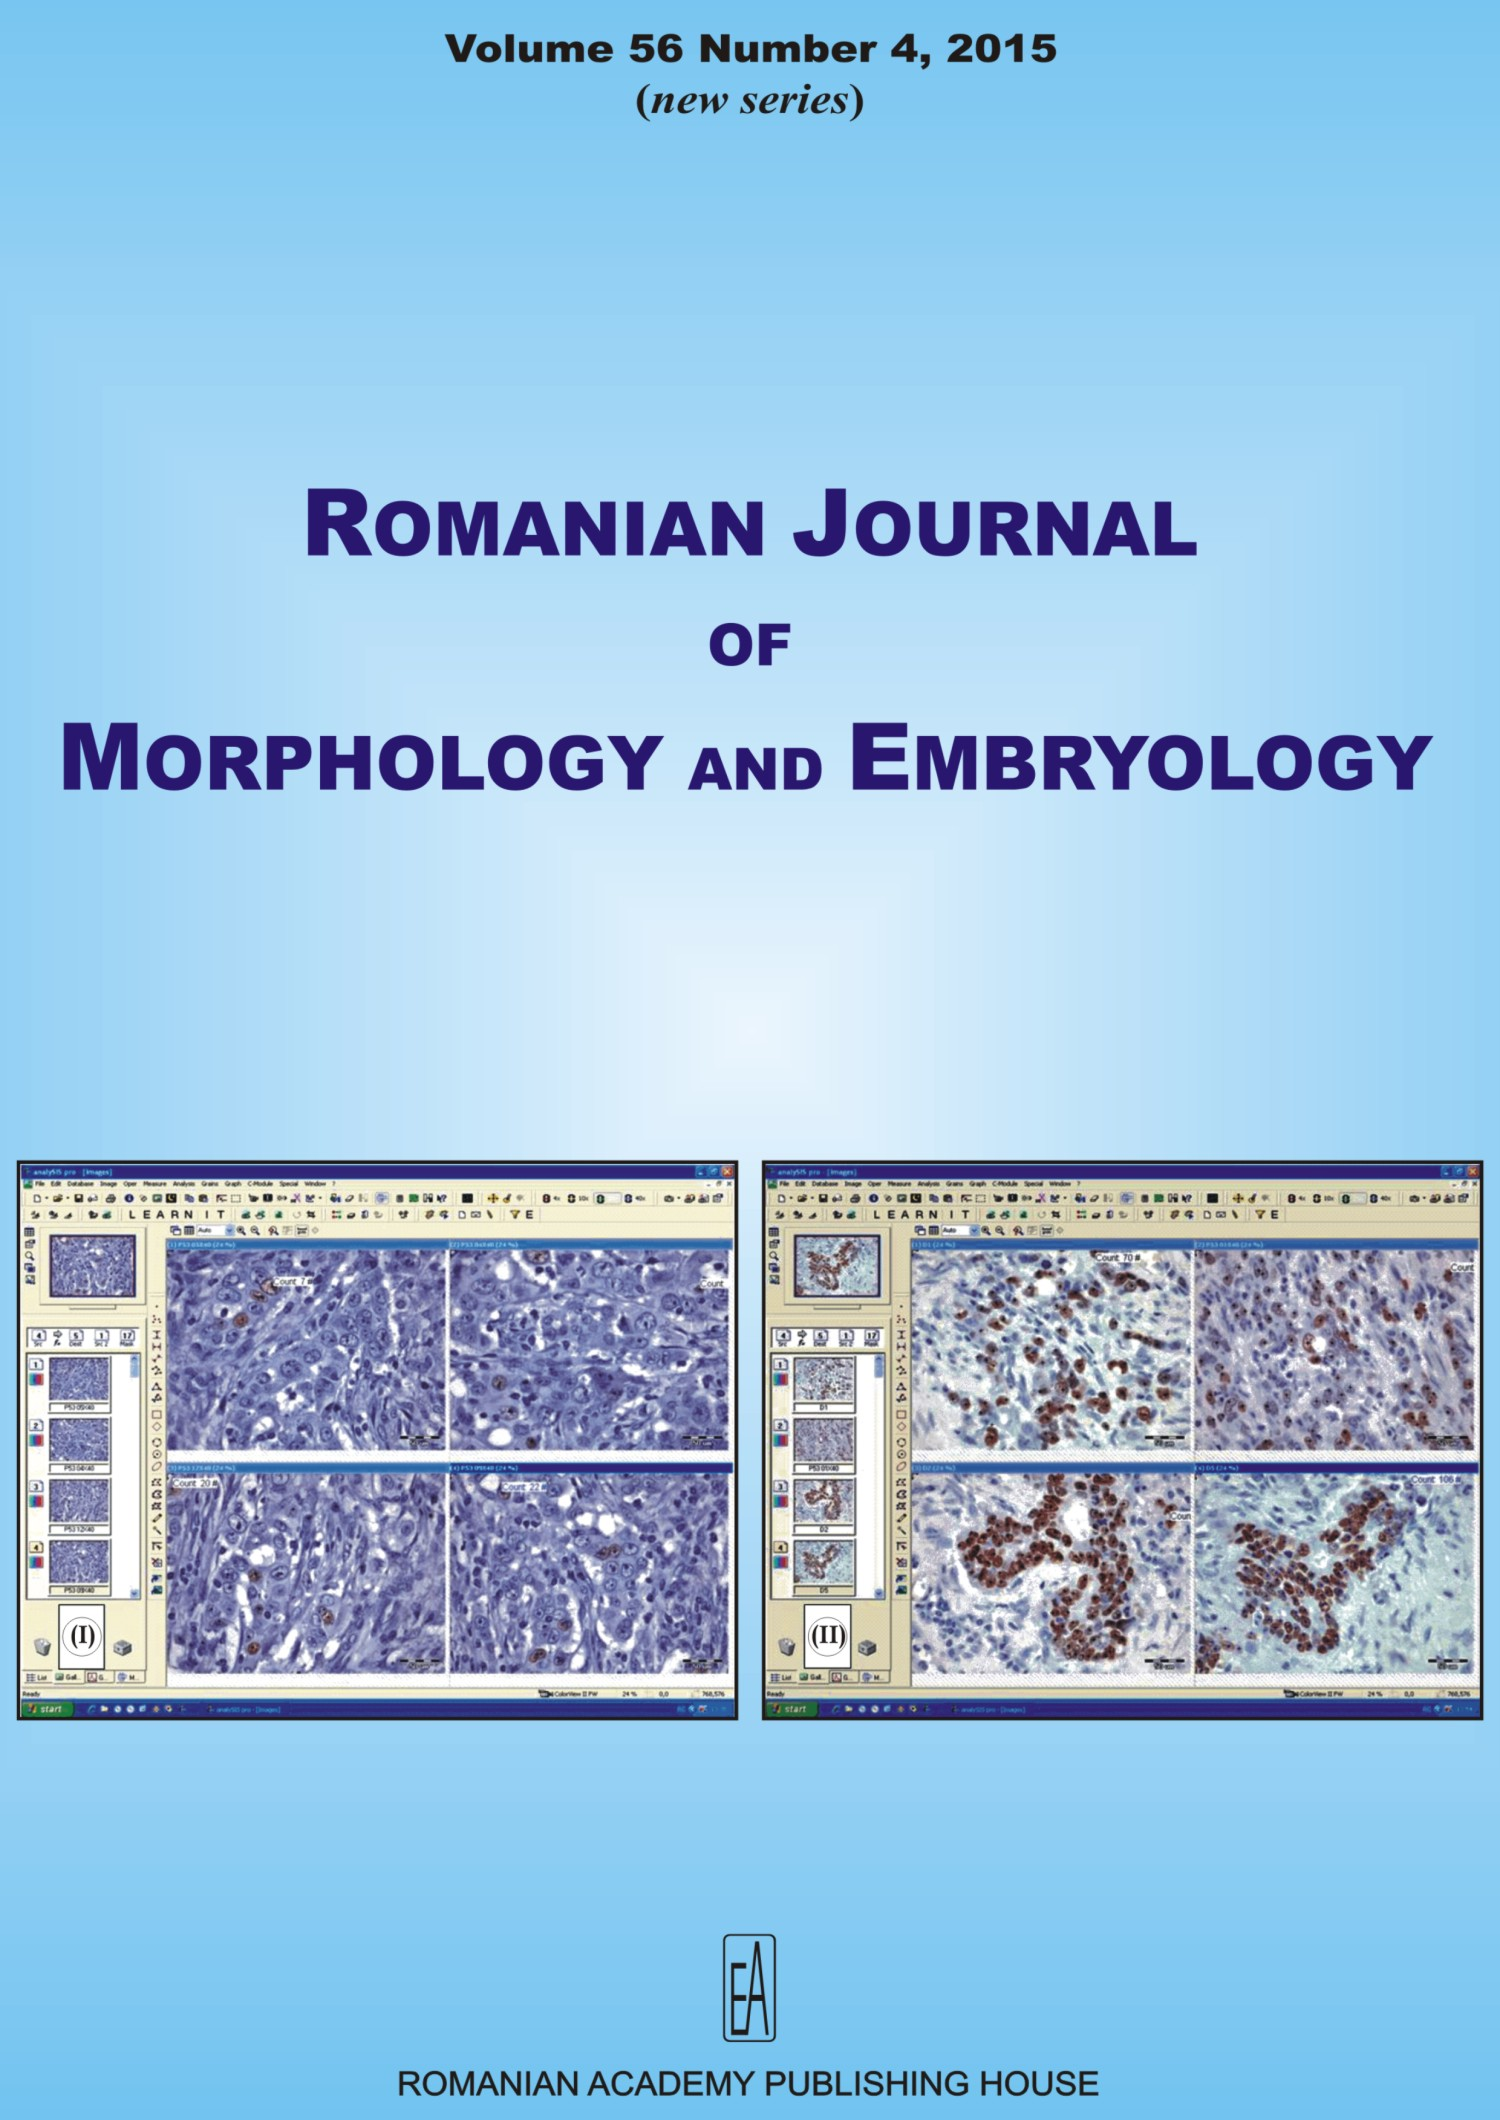 Romanian Journal of Morphology and Embryology, vol. 56 no. 4, 2015